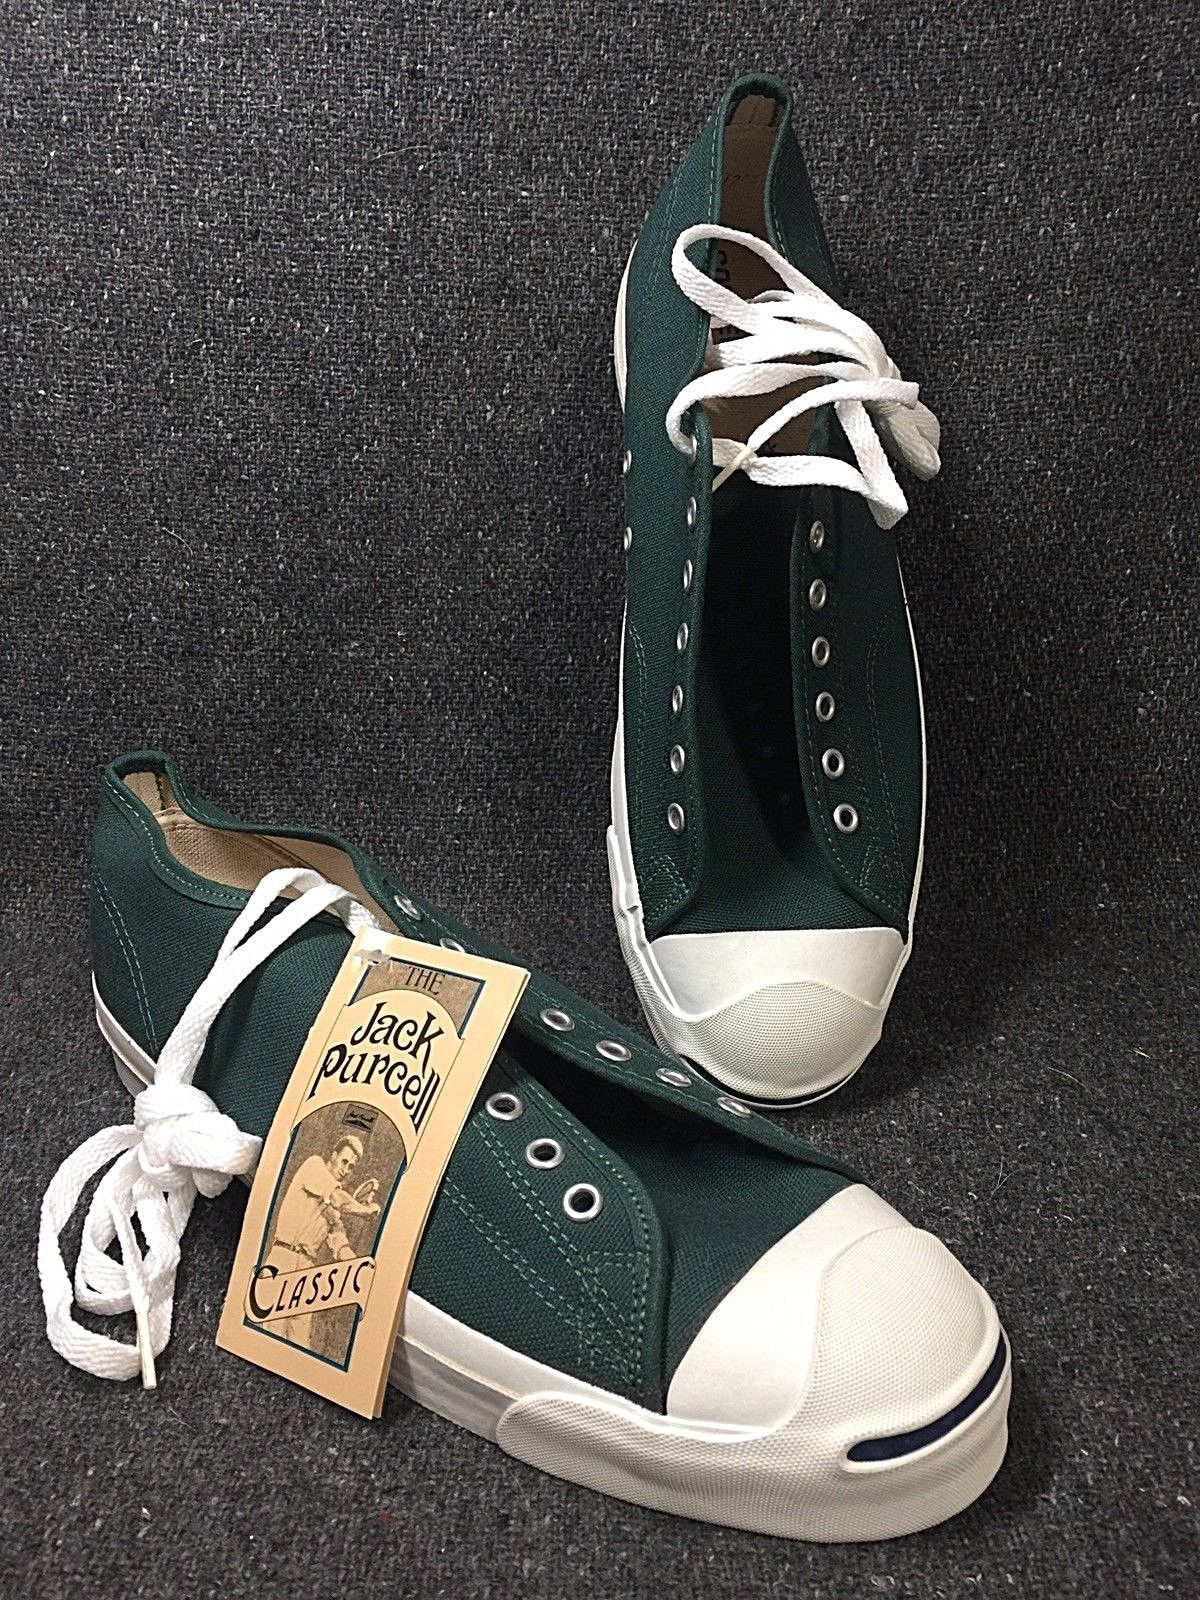 d3dc9cfcee61 Details about Vintage Converse Jack Purcell 70 s 80 s AUTHENTIC MADE ...